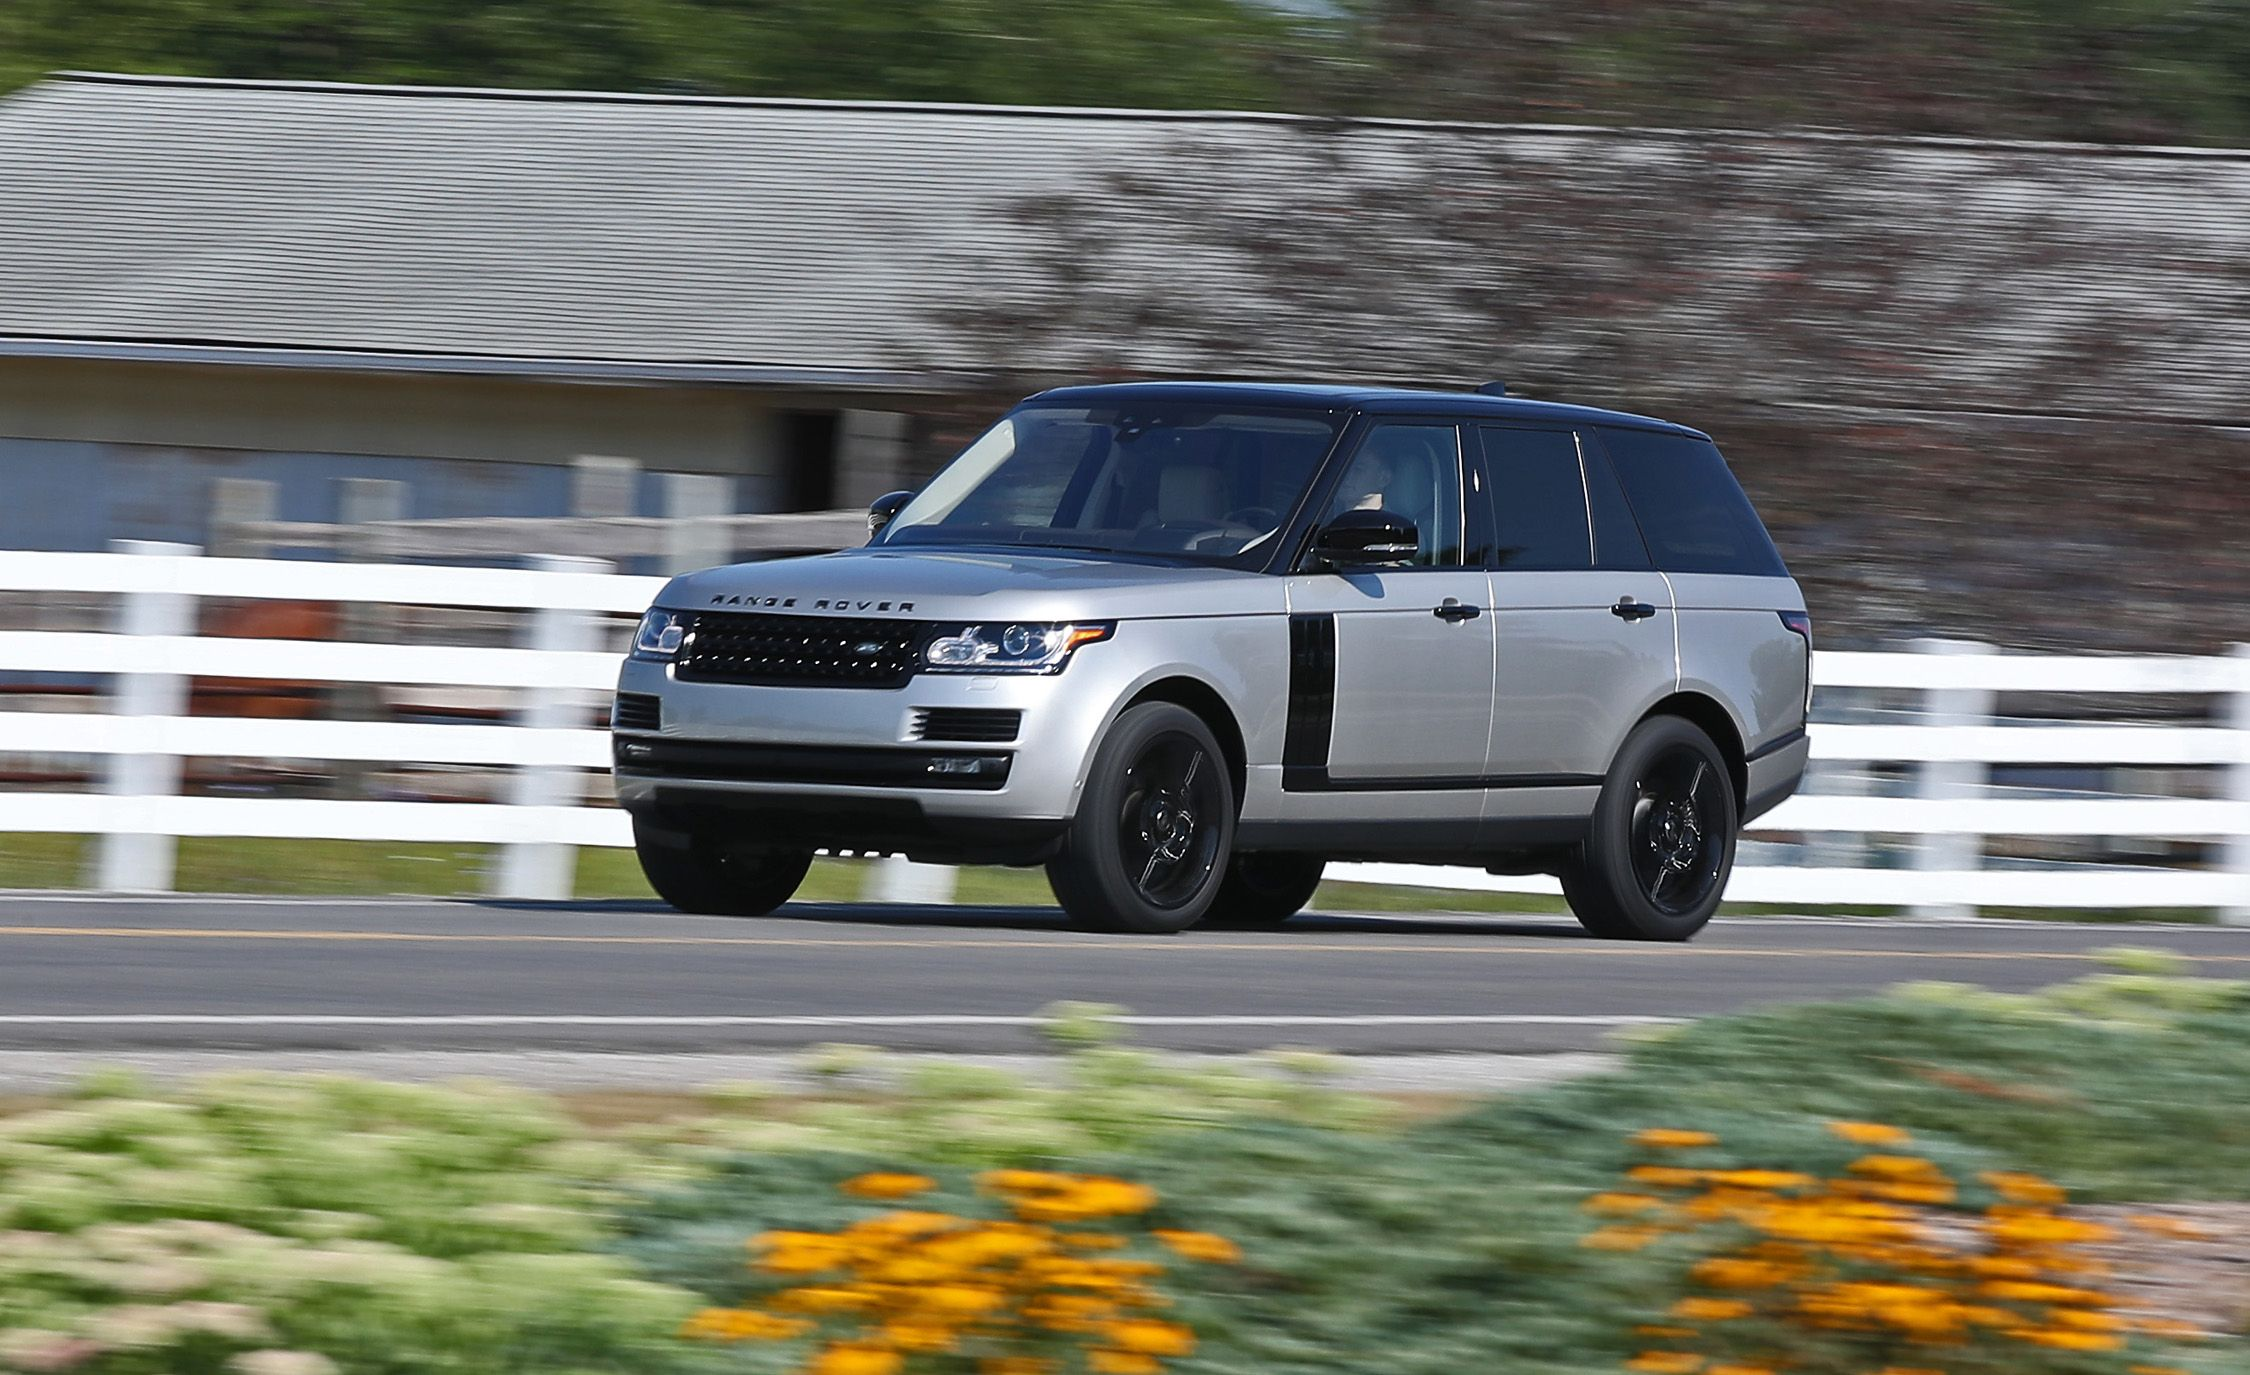 land rover range rover supercharged reviews land rover. Black Bedroom Furniture Sets. Home Design Ideas